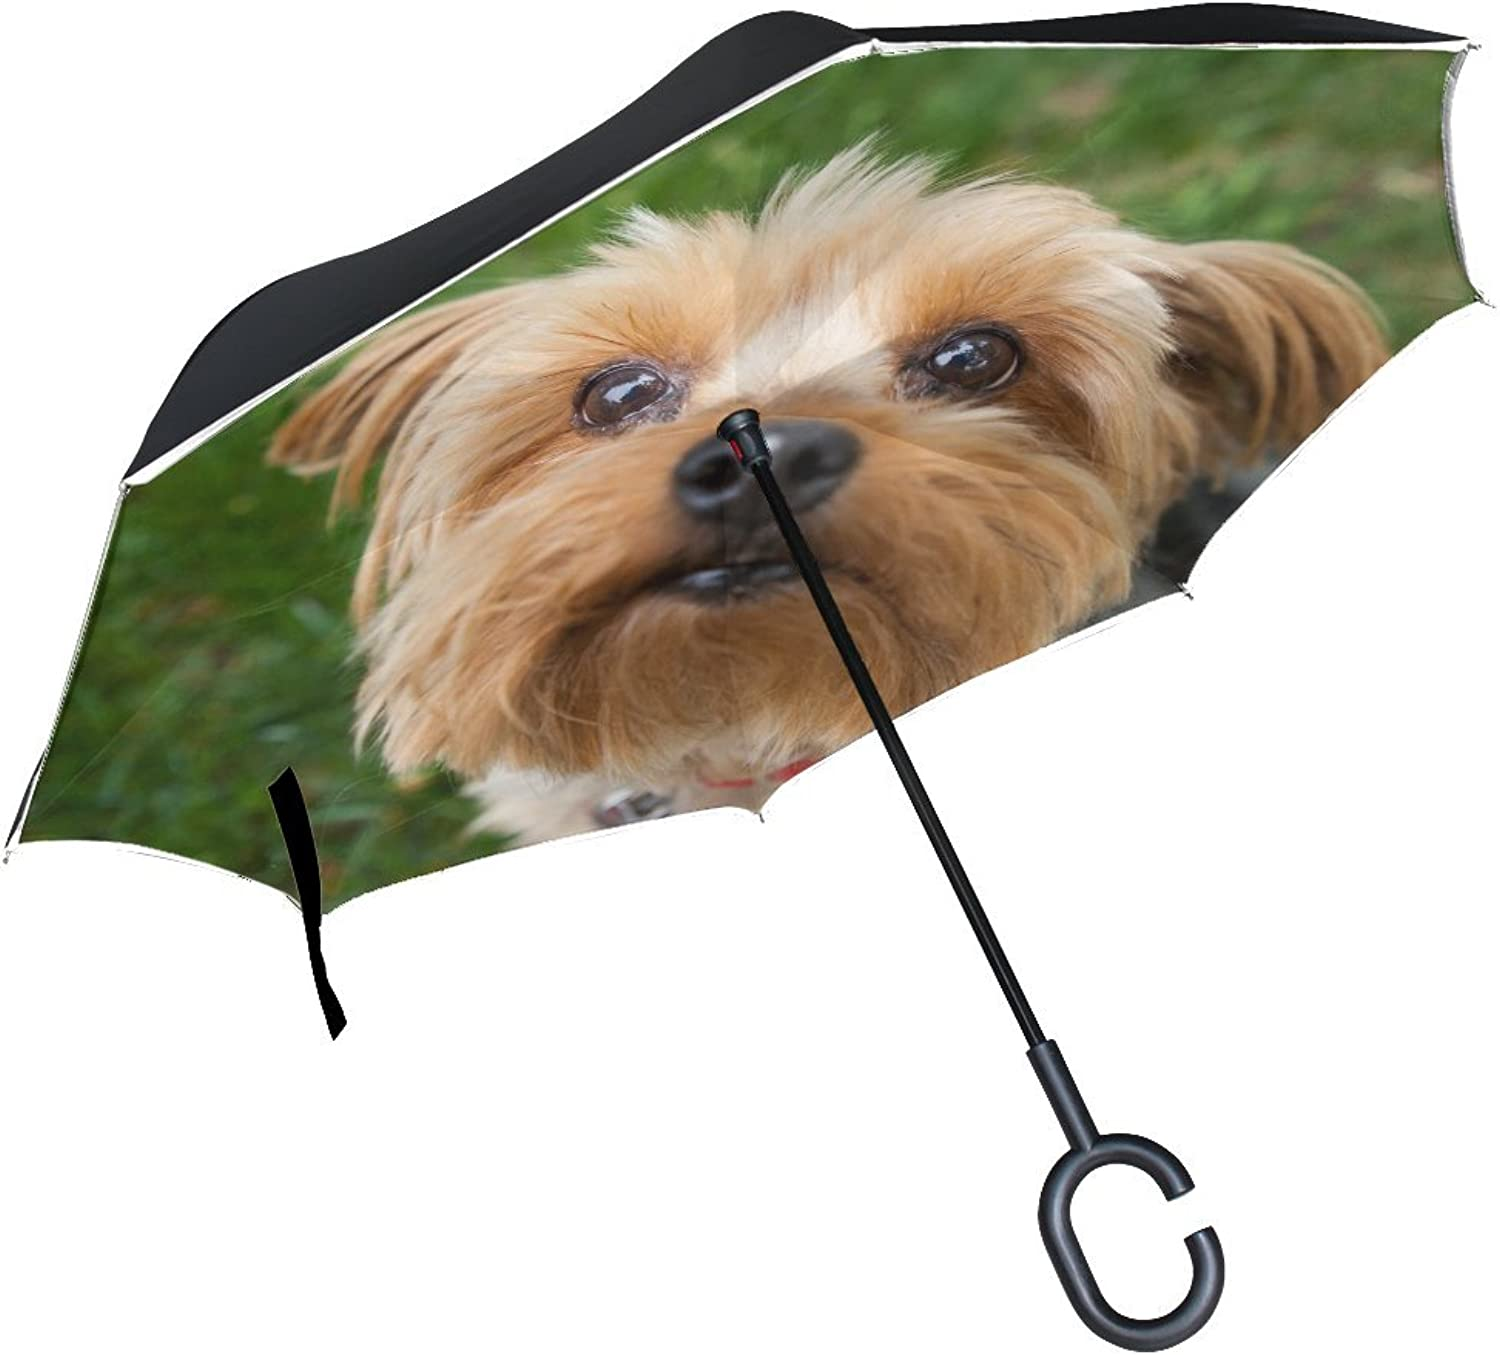 Animal Dog Yorkshire Terrier Yellow Fluffy Puppy Adorable Animated Real Ingreened Umbrella Large Double Layer Outdoor Rain Sun Car Reversible Umbrella